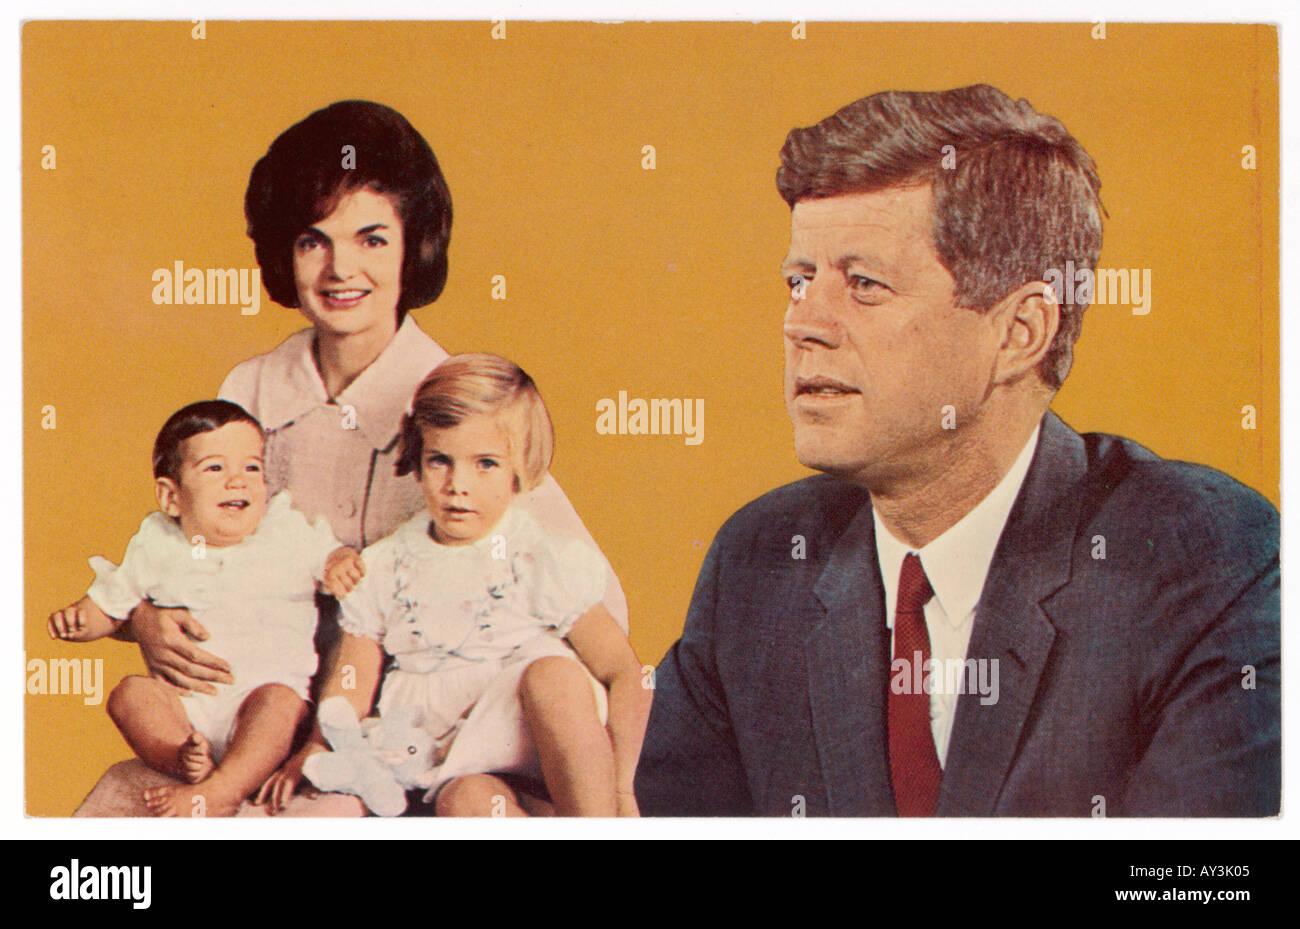 Jfk And Family - Stock Image